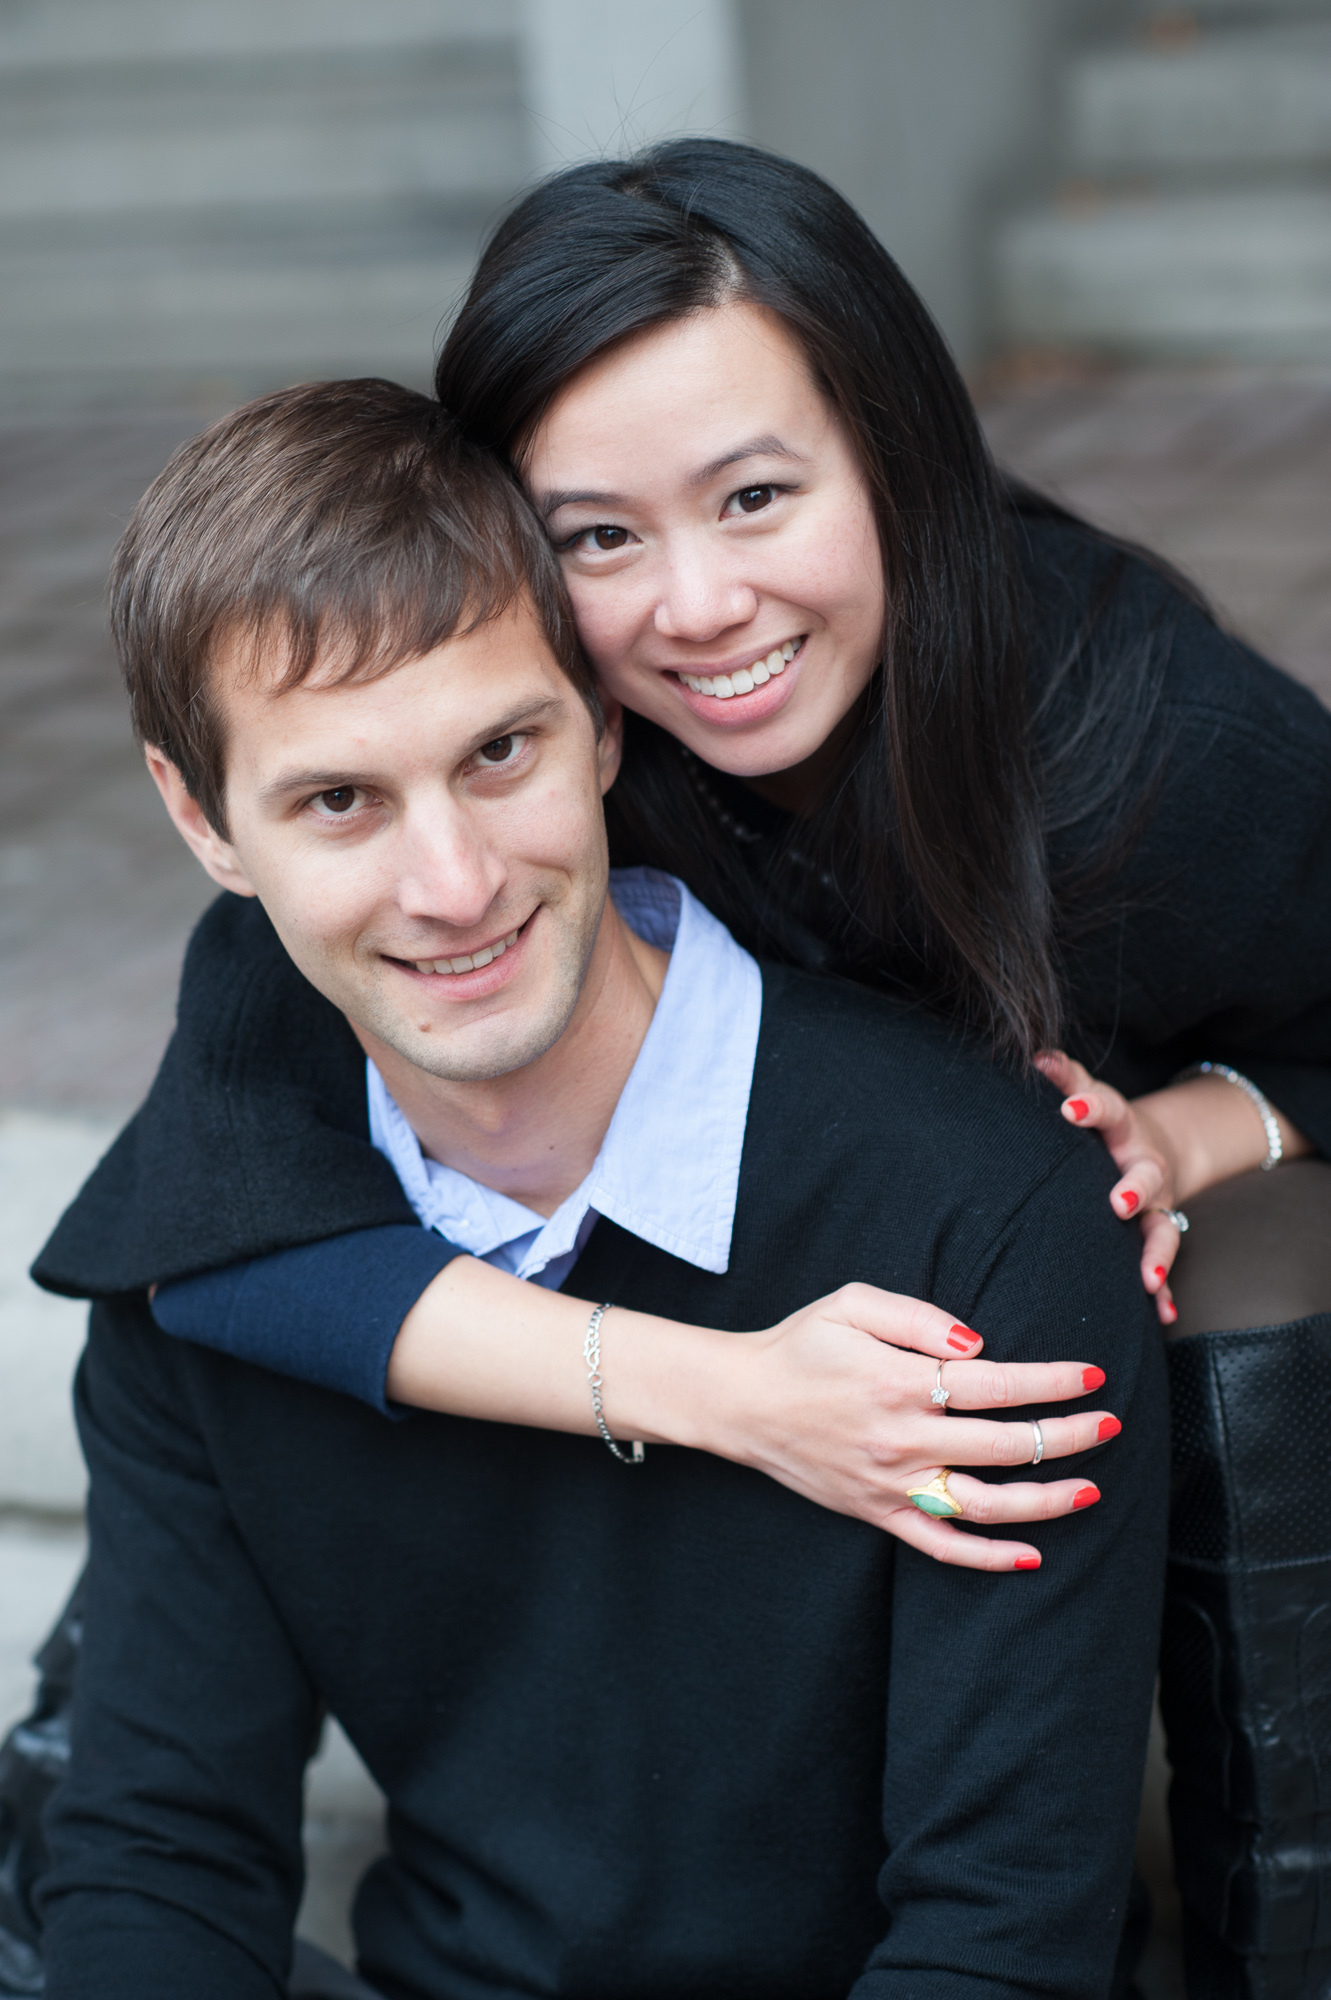 toronto-engagement-photograph-006.jpg